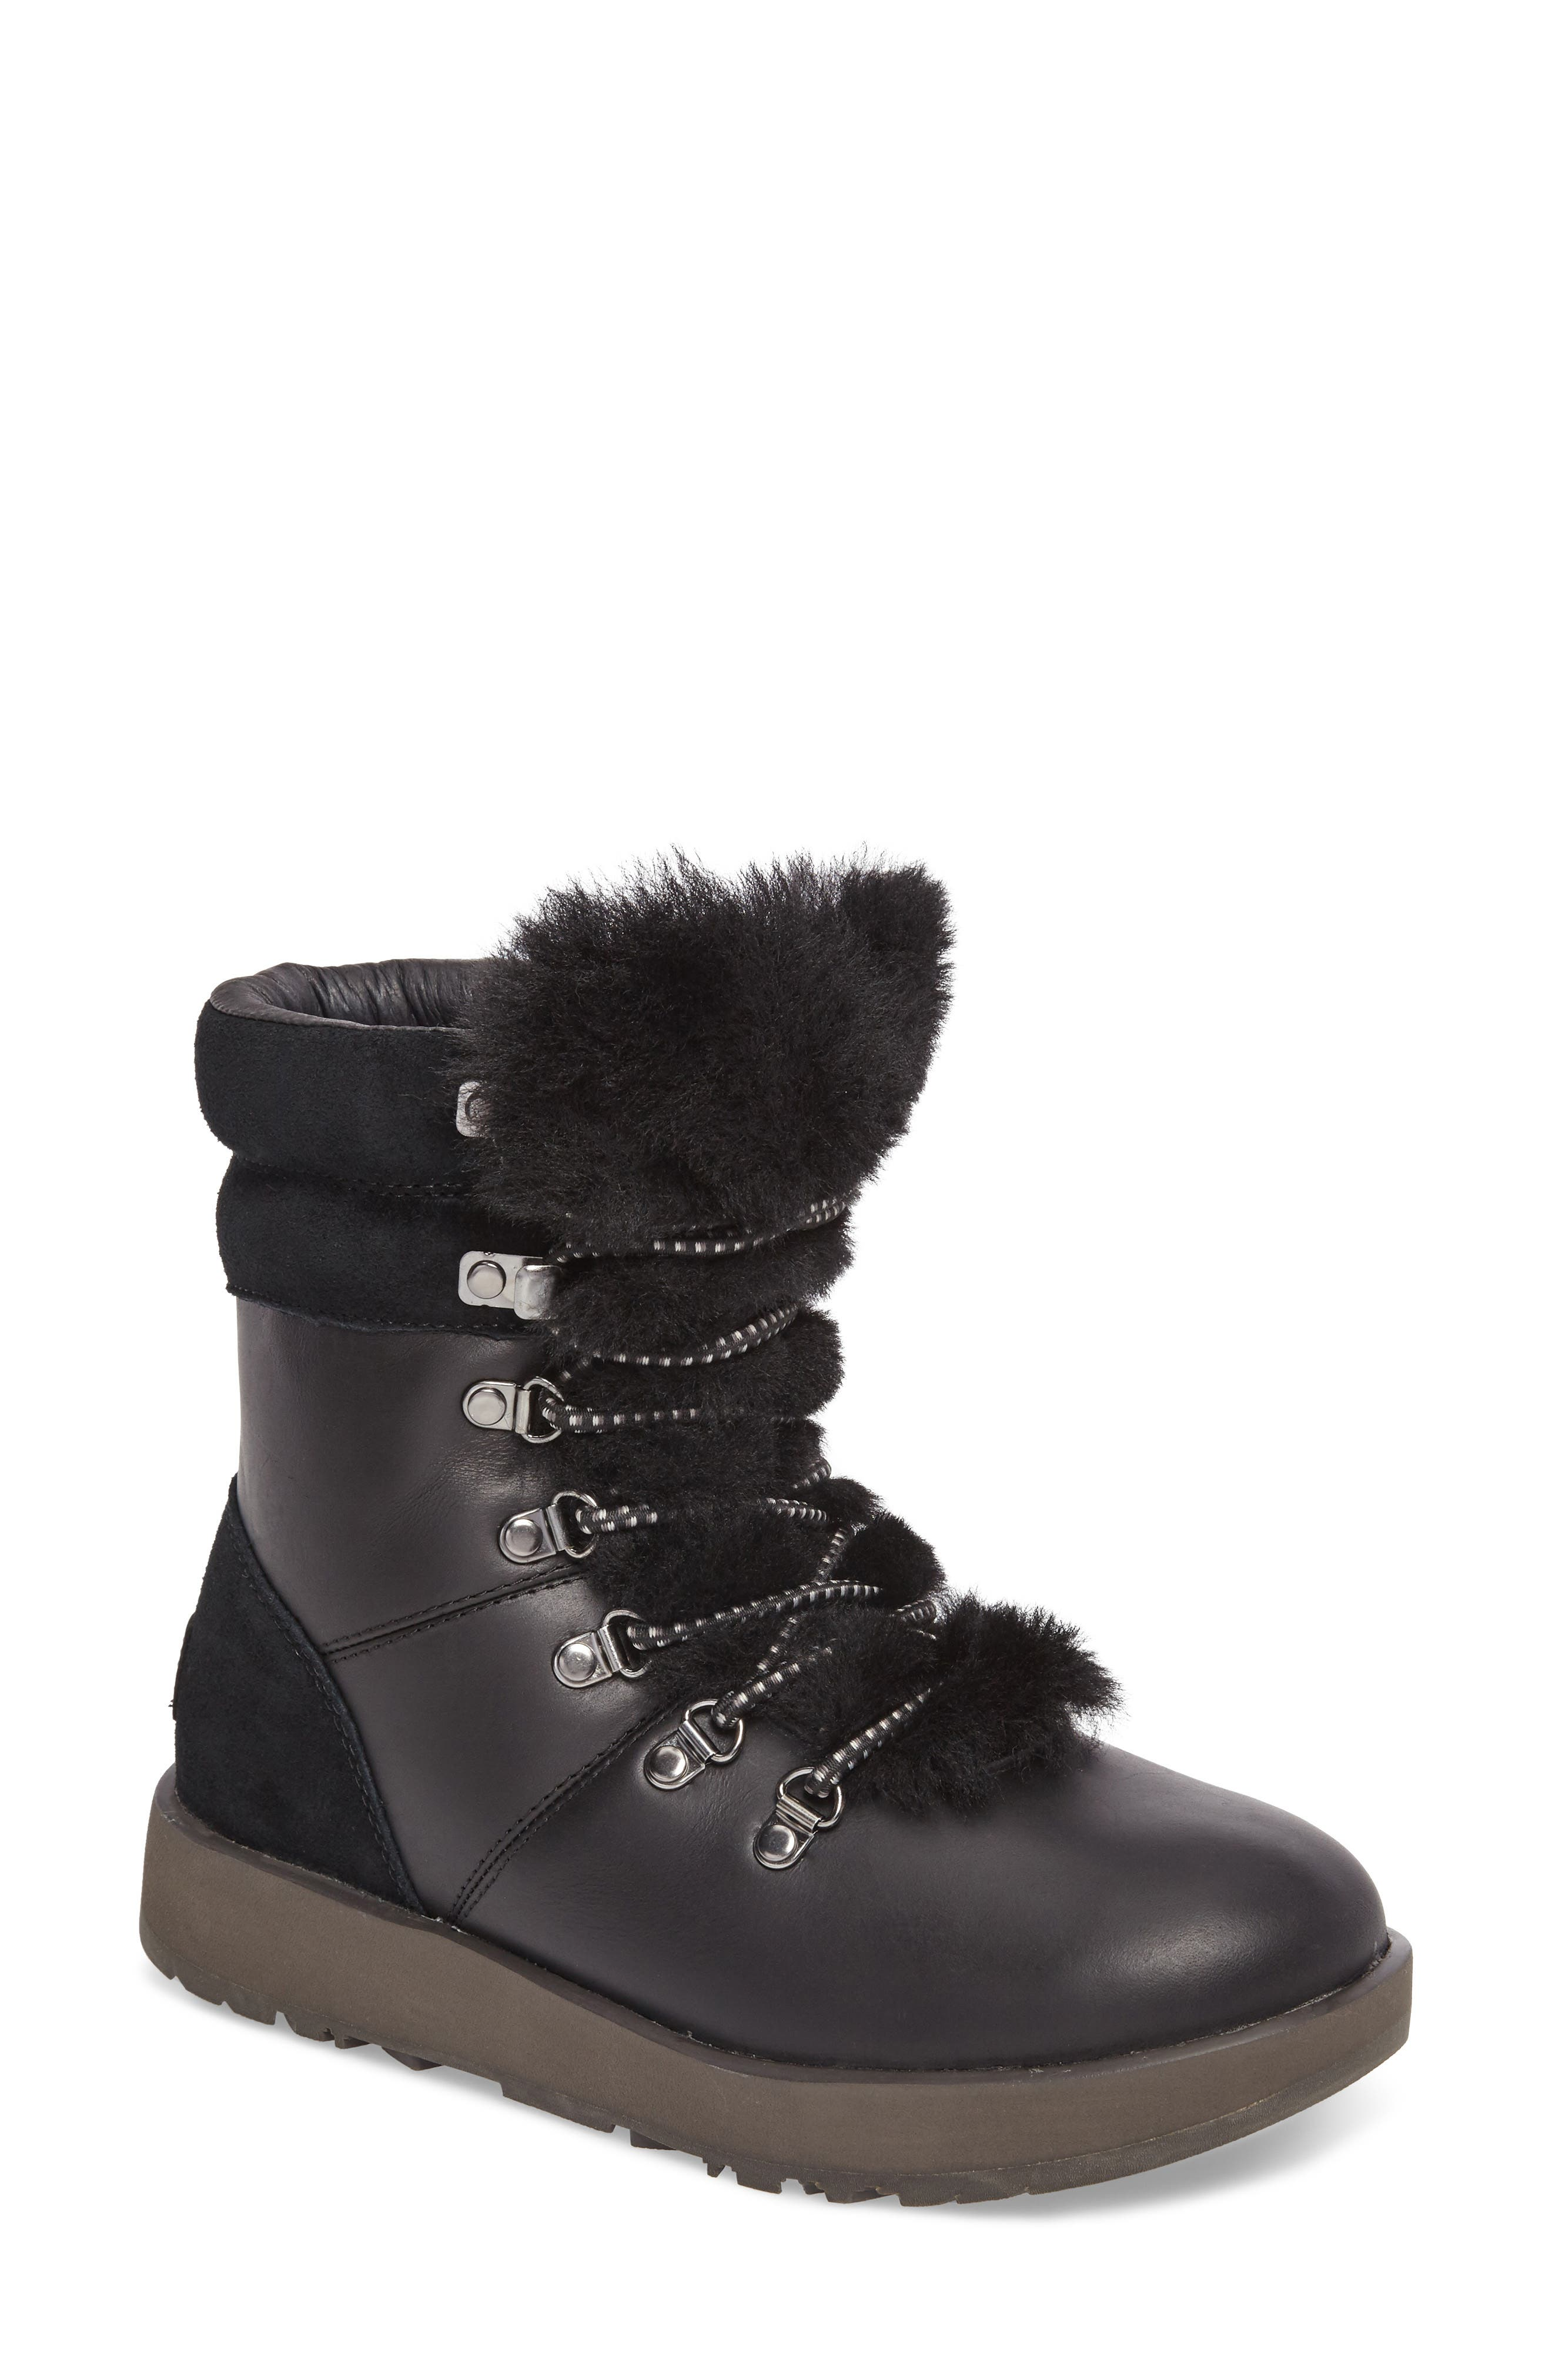 9b68193a8e4 Women'S Viki Waterproof Cold-Weather Boots in Black